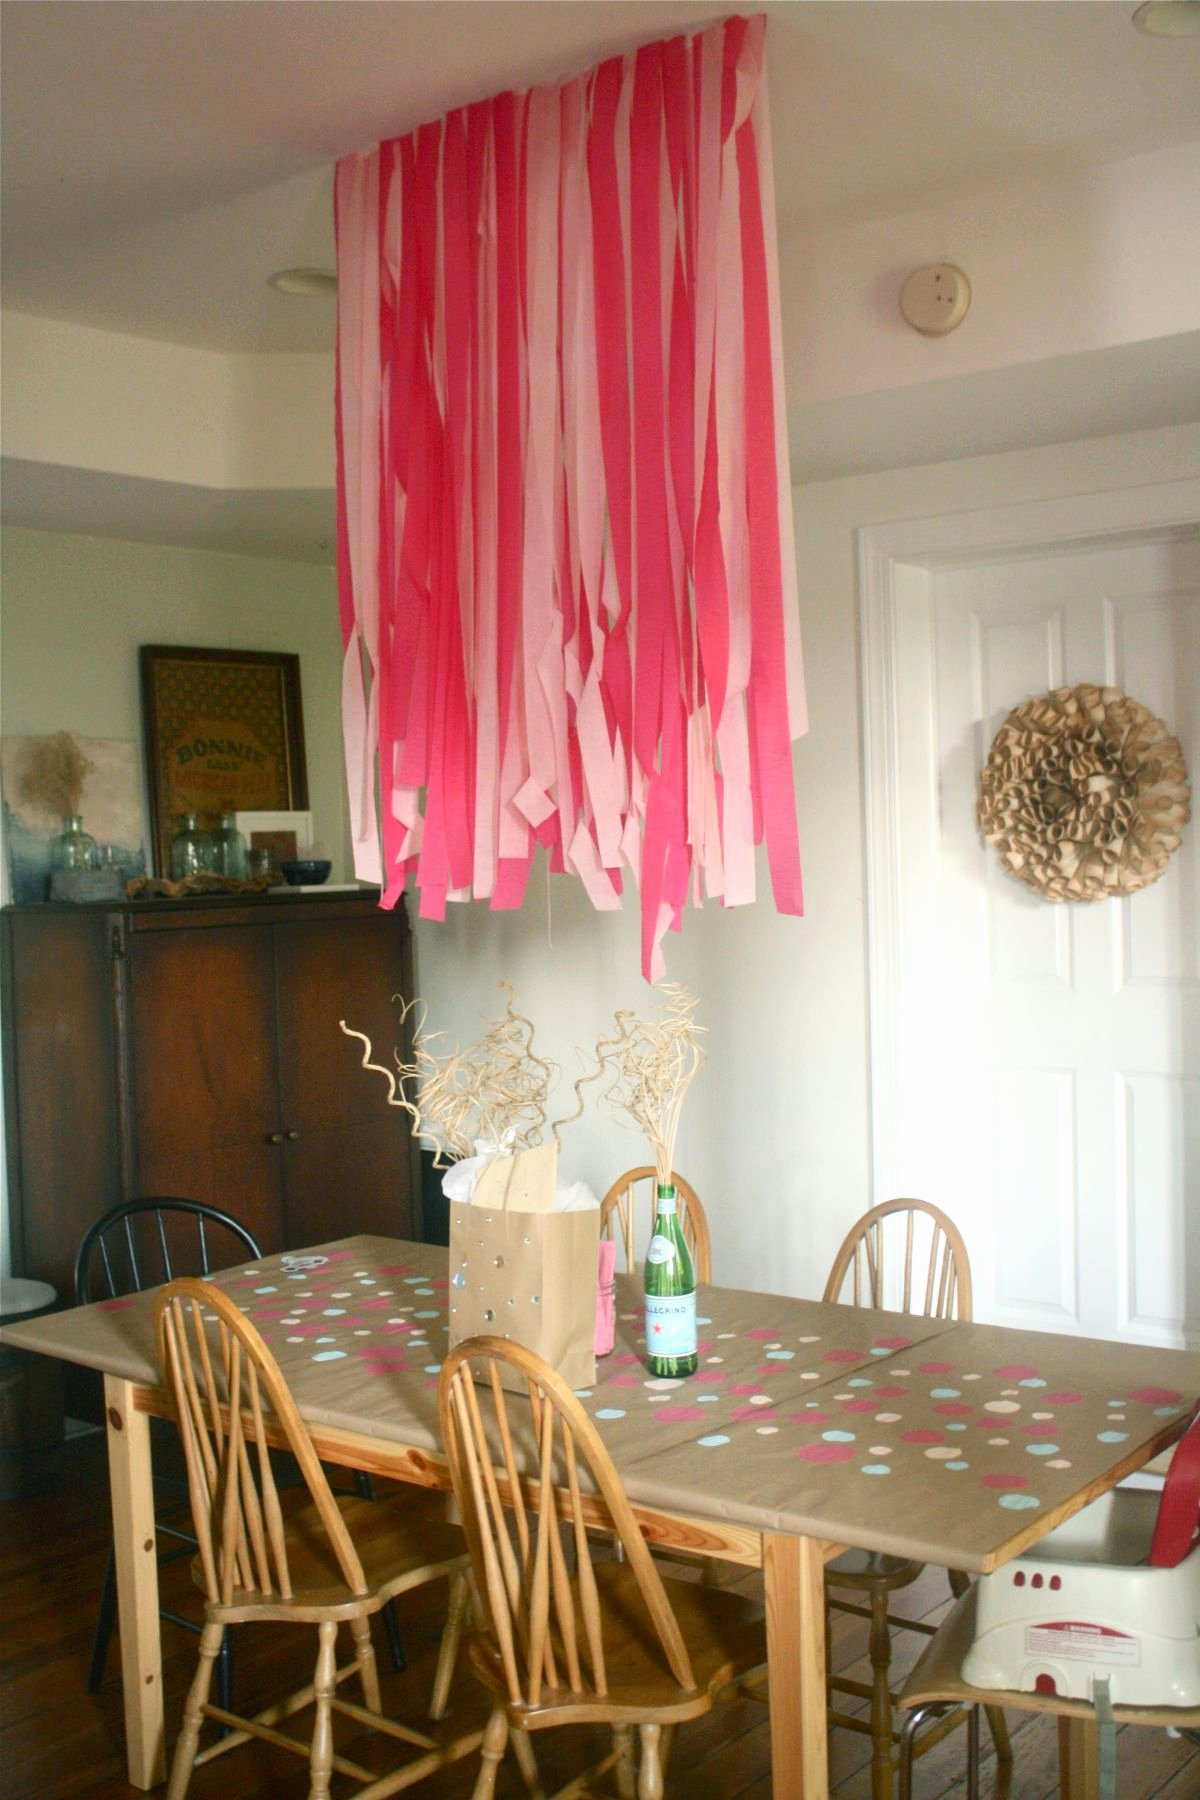 Birthday Decoration Ideas at Home for Wife Inspirational 12 Easy Diy Birthday Decoration Ideas 2020